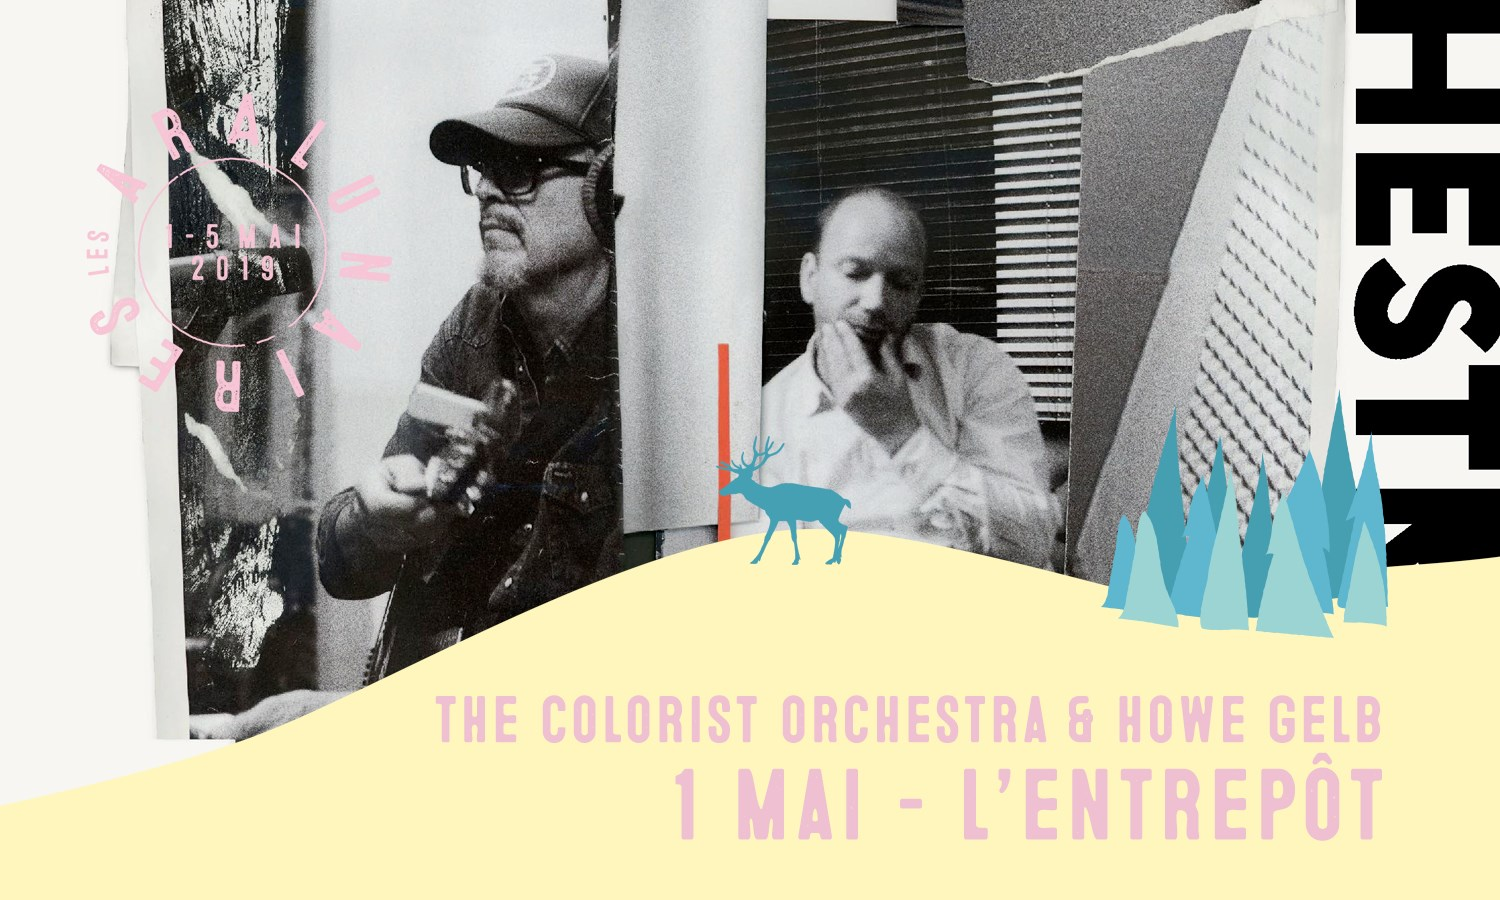 THE COLORIST ORCHESTRA & HOWE GELB